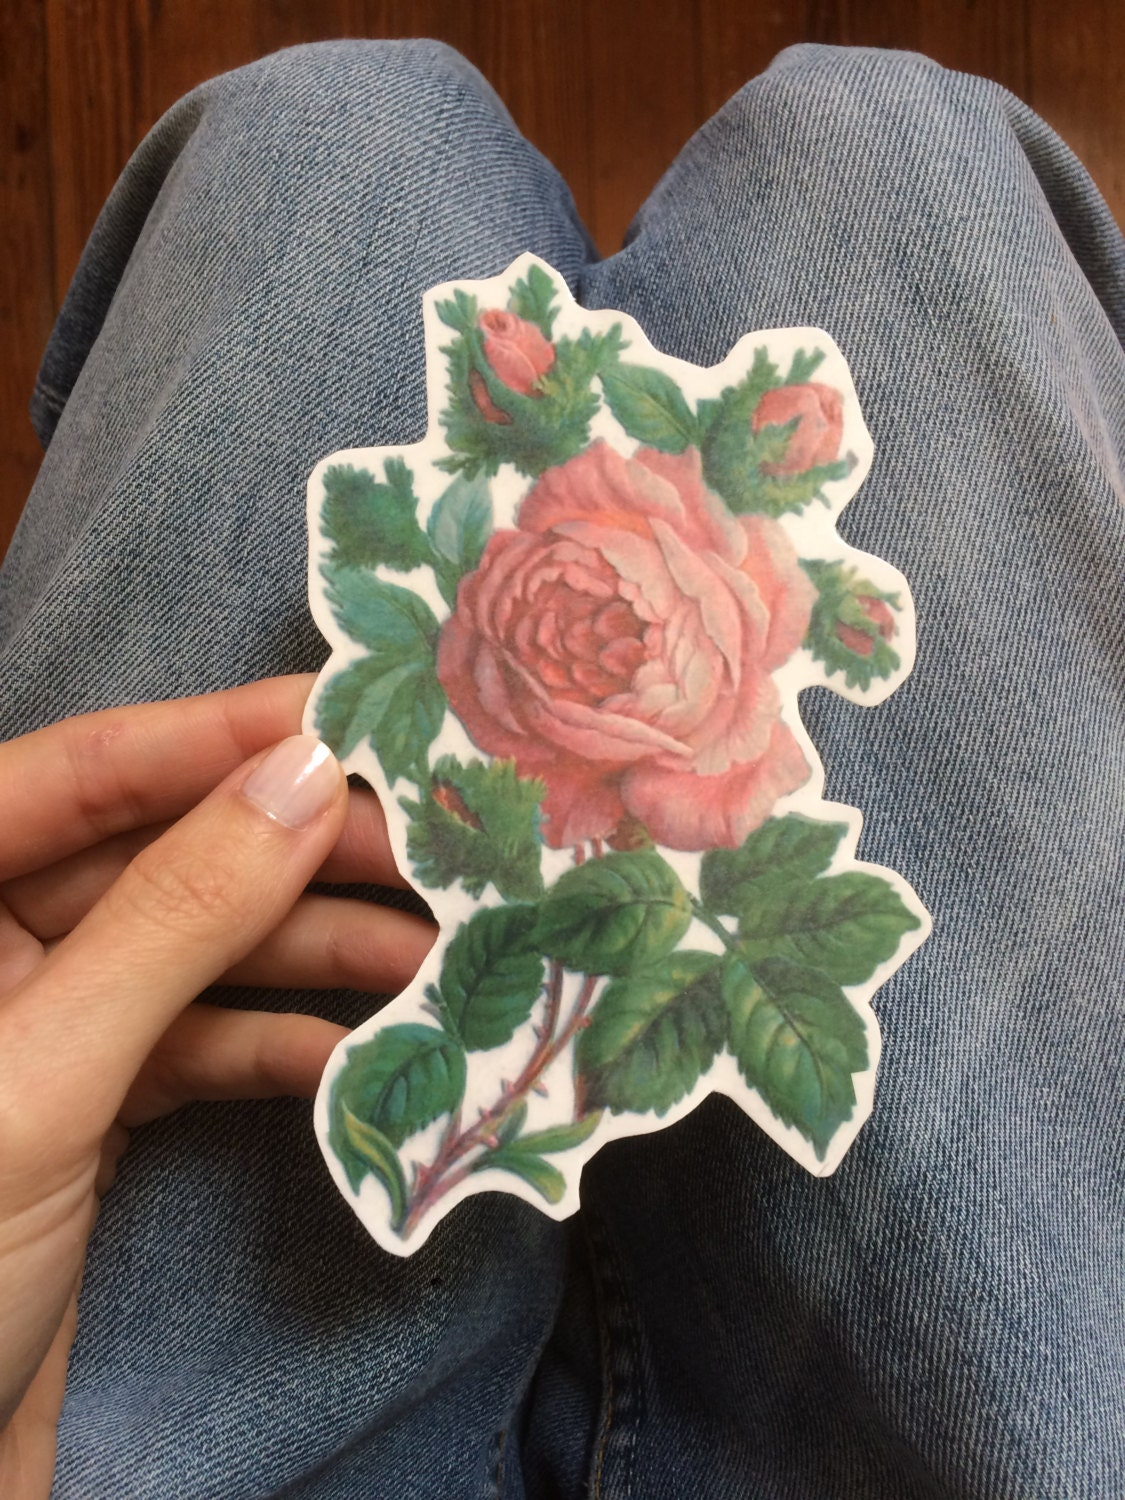 d6bbb4052ece0 Rose Temporary Tattoo. Big Floral Tattoo available in small   Etsy